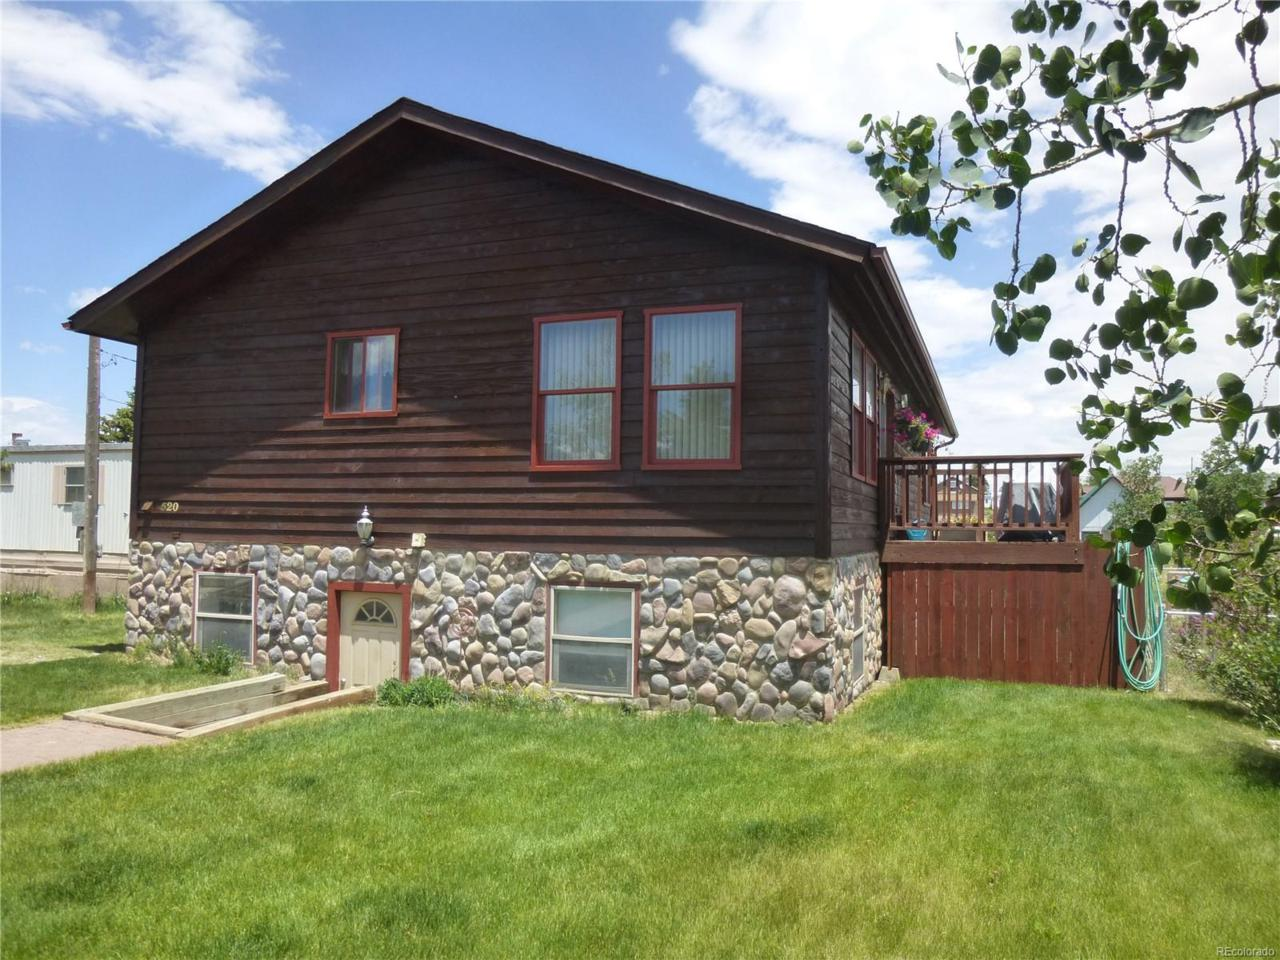 520 Hathaway, Fairplay, CO 80440 (MLS #8263407) :: 8z Real Estate